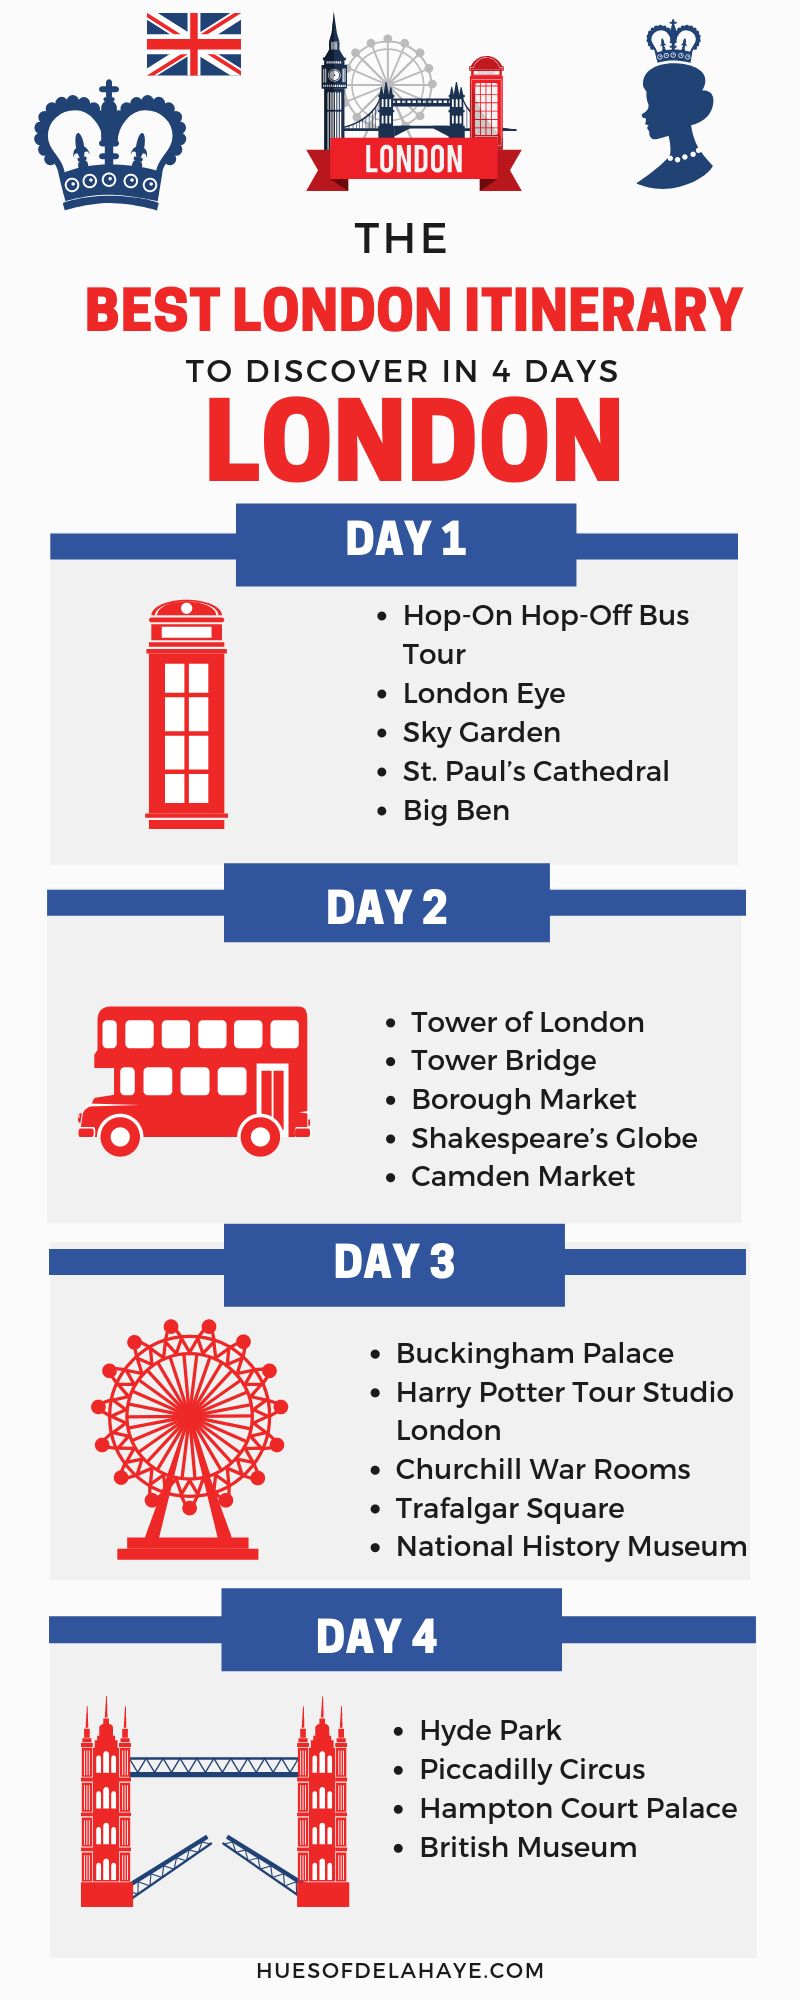 Want to know what to do in London in 4 days? Well this 4 days in London itinerary by a local is all you'll need for your London trip. This post has some of the best things to do in London including bucket lists activities like seeing Big Ben, Harry Potter studio tour and areas like Shoreditch. It even includes packing tips and what outfits and products to pack on your visiting to London. #travellondon